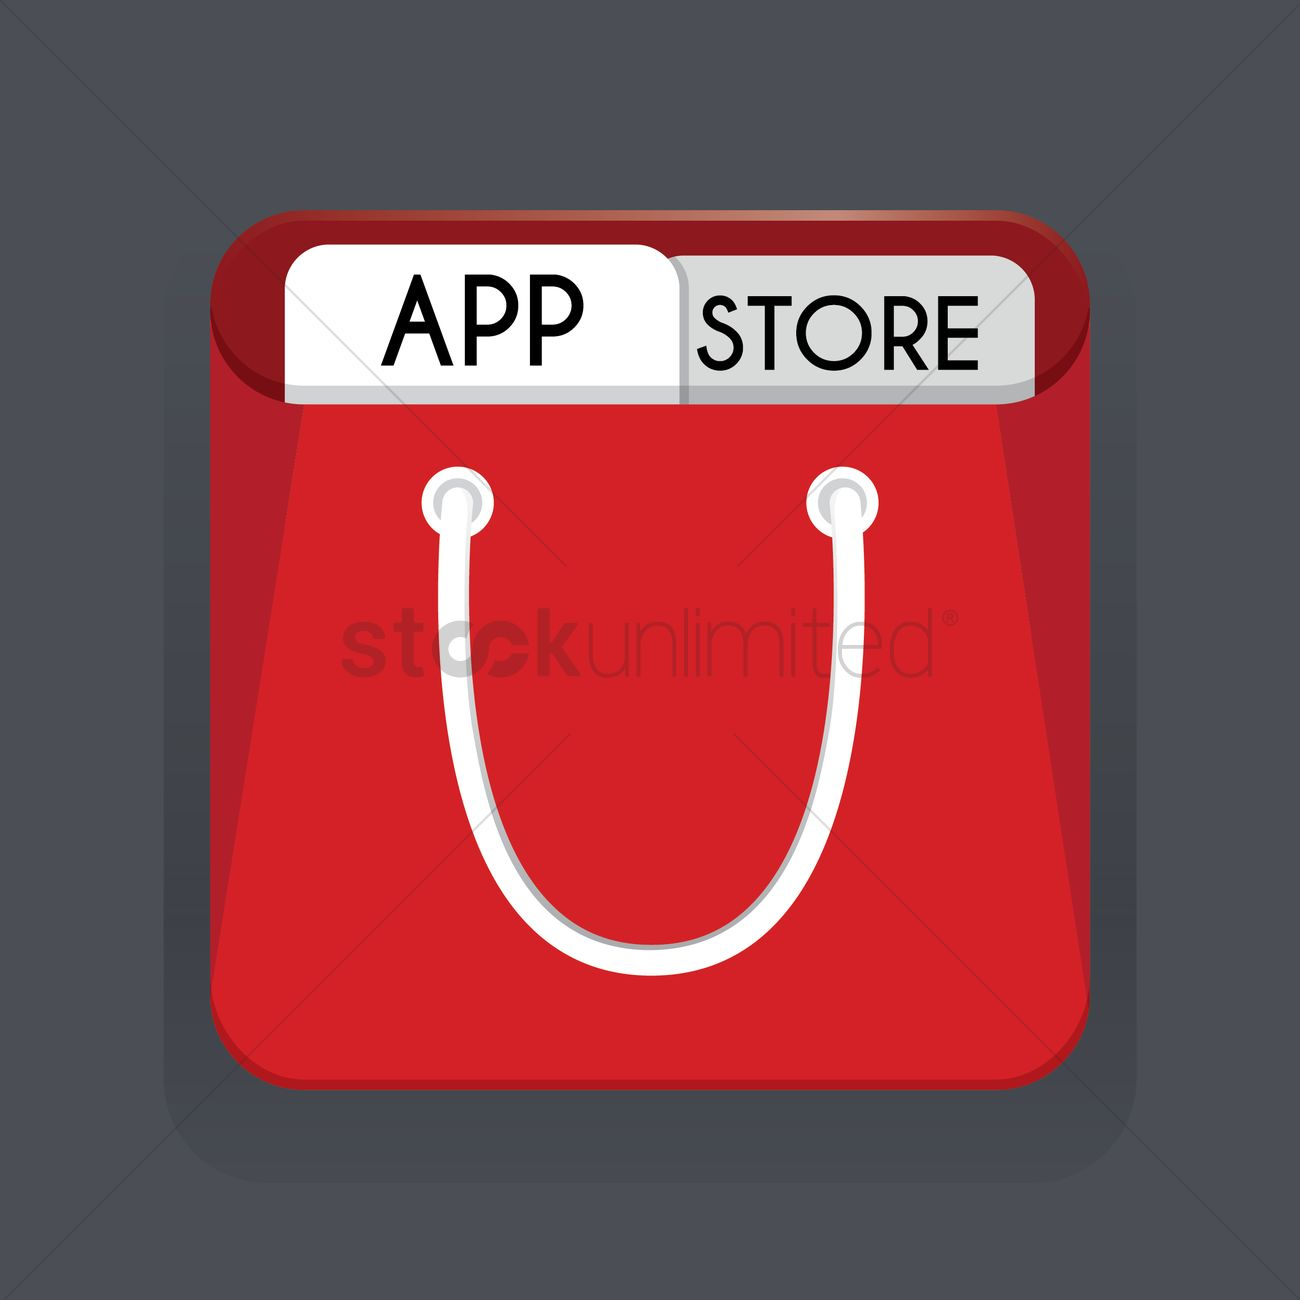 App store icon Vector Image - 1859320 | StockUnlimited